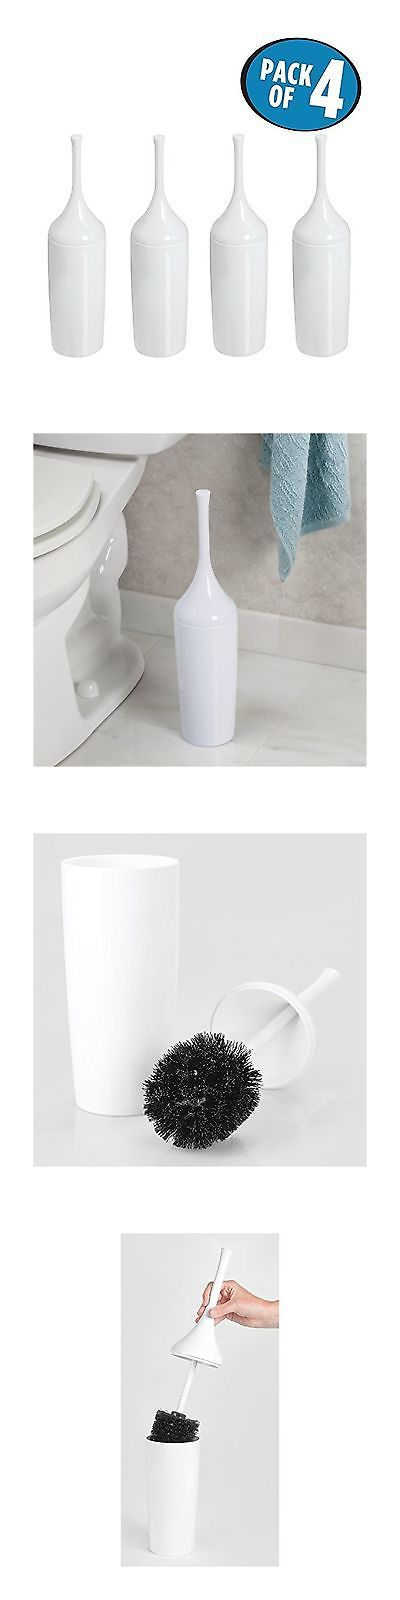 Toilet Brushes and Sets 66723: Mdesign Toilet Bowl Brush And Holder For Bathroom Storage - Pack Of 4 White -> BUY IT NOW ONLY: $43.77 on eBay!